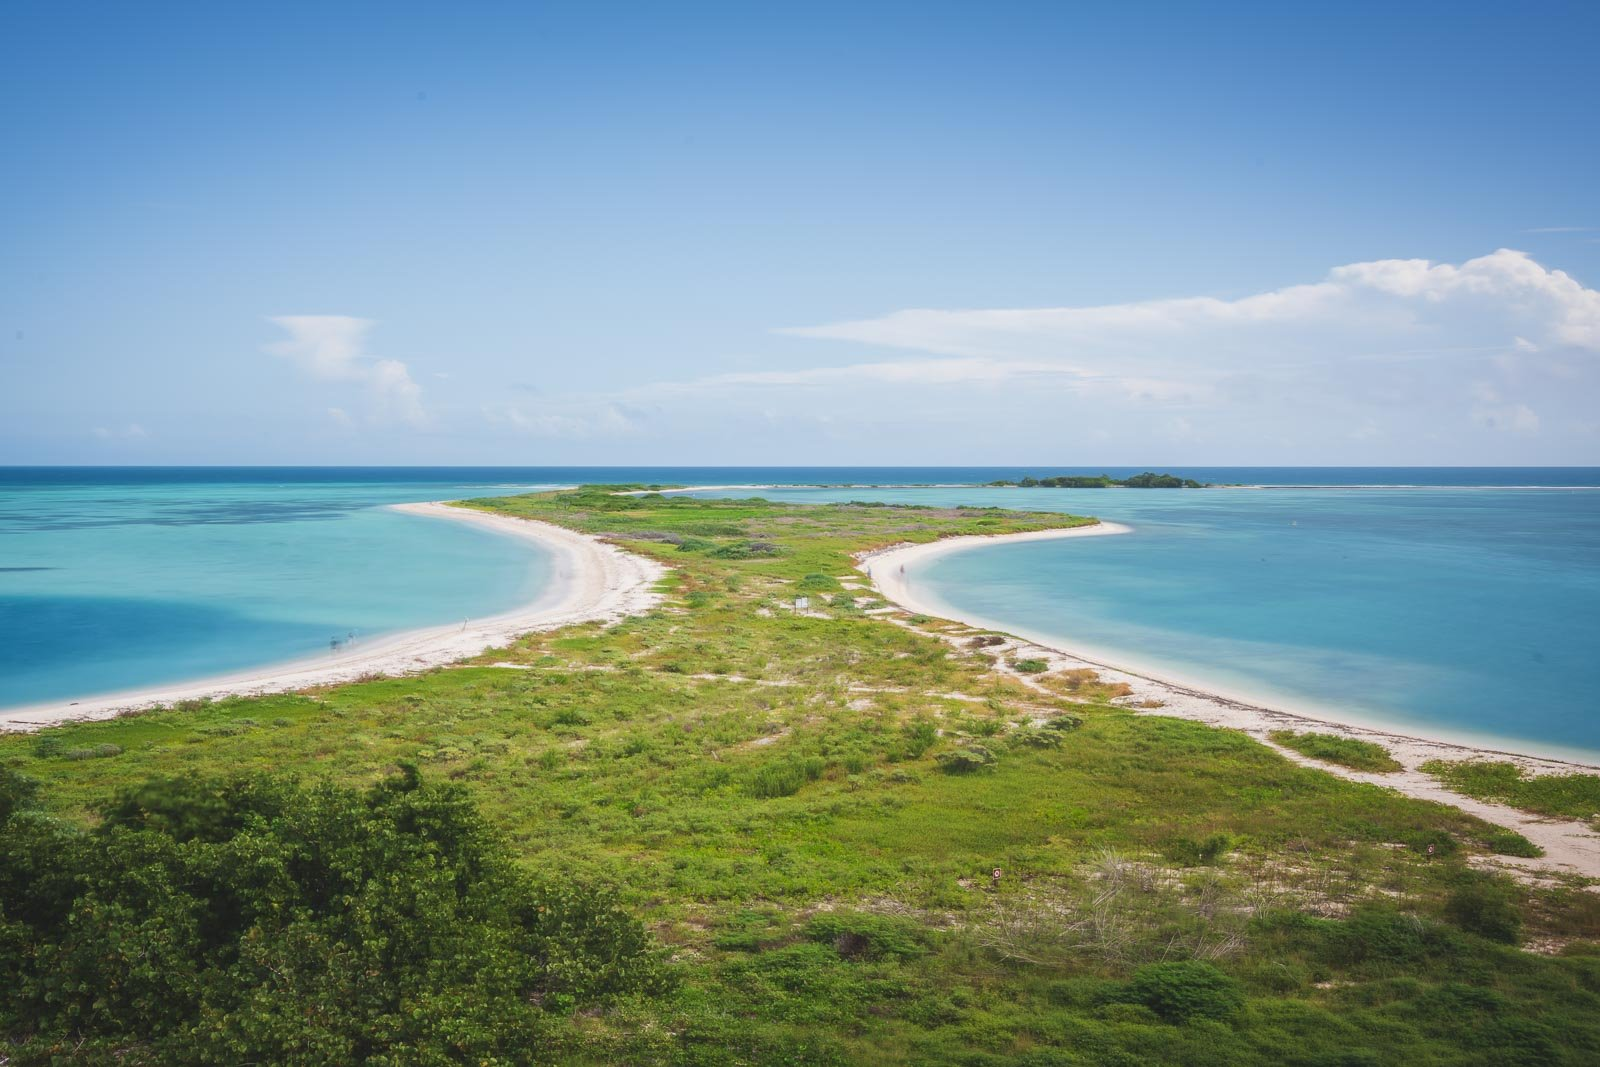 Best Stops on a Florida Keys Road Trip Itinerary